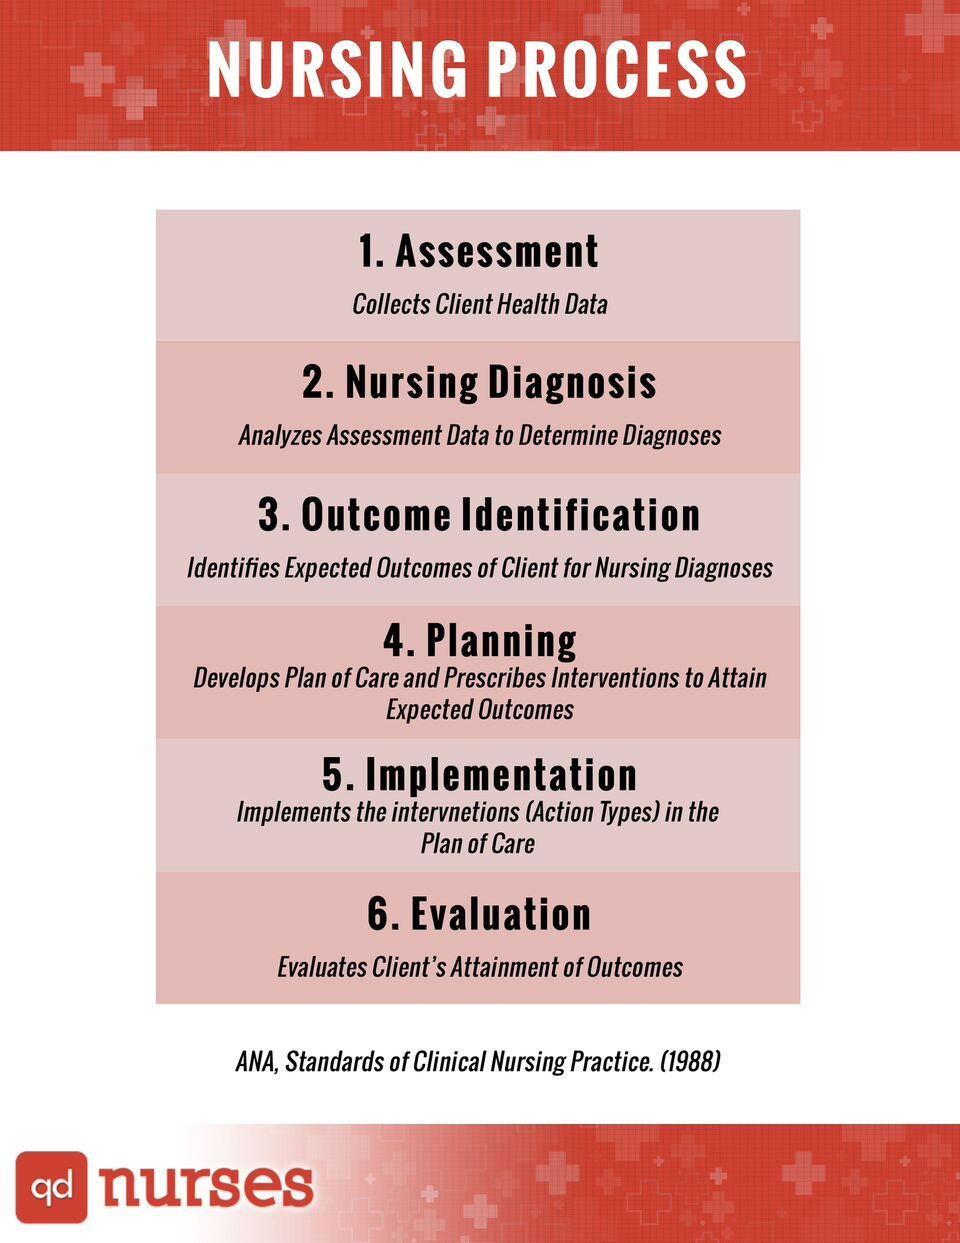 The Nursing Process Include Assessment Nursing Diagnosis